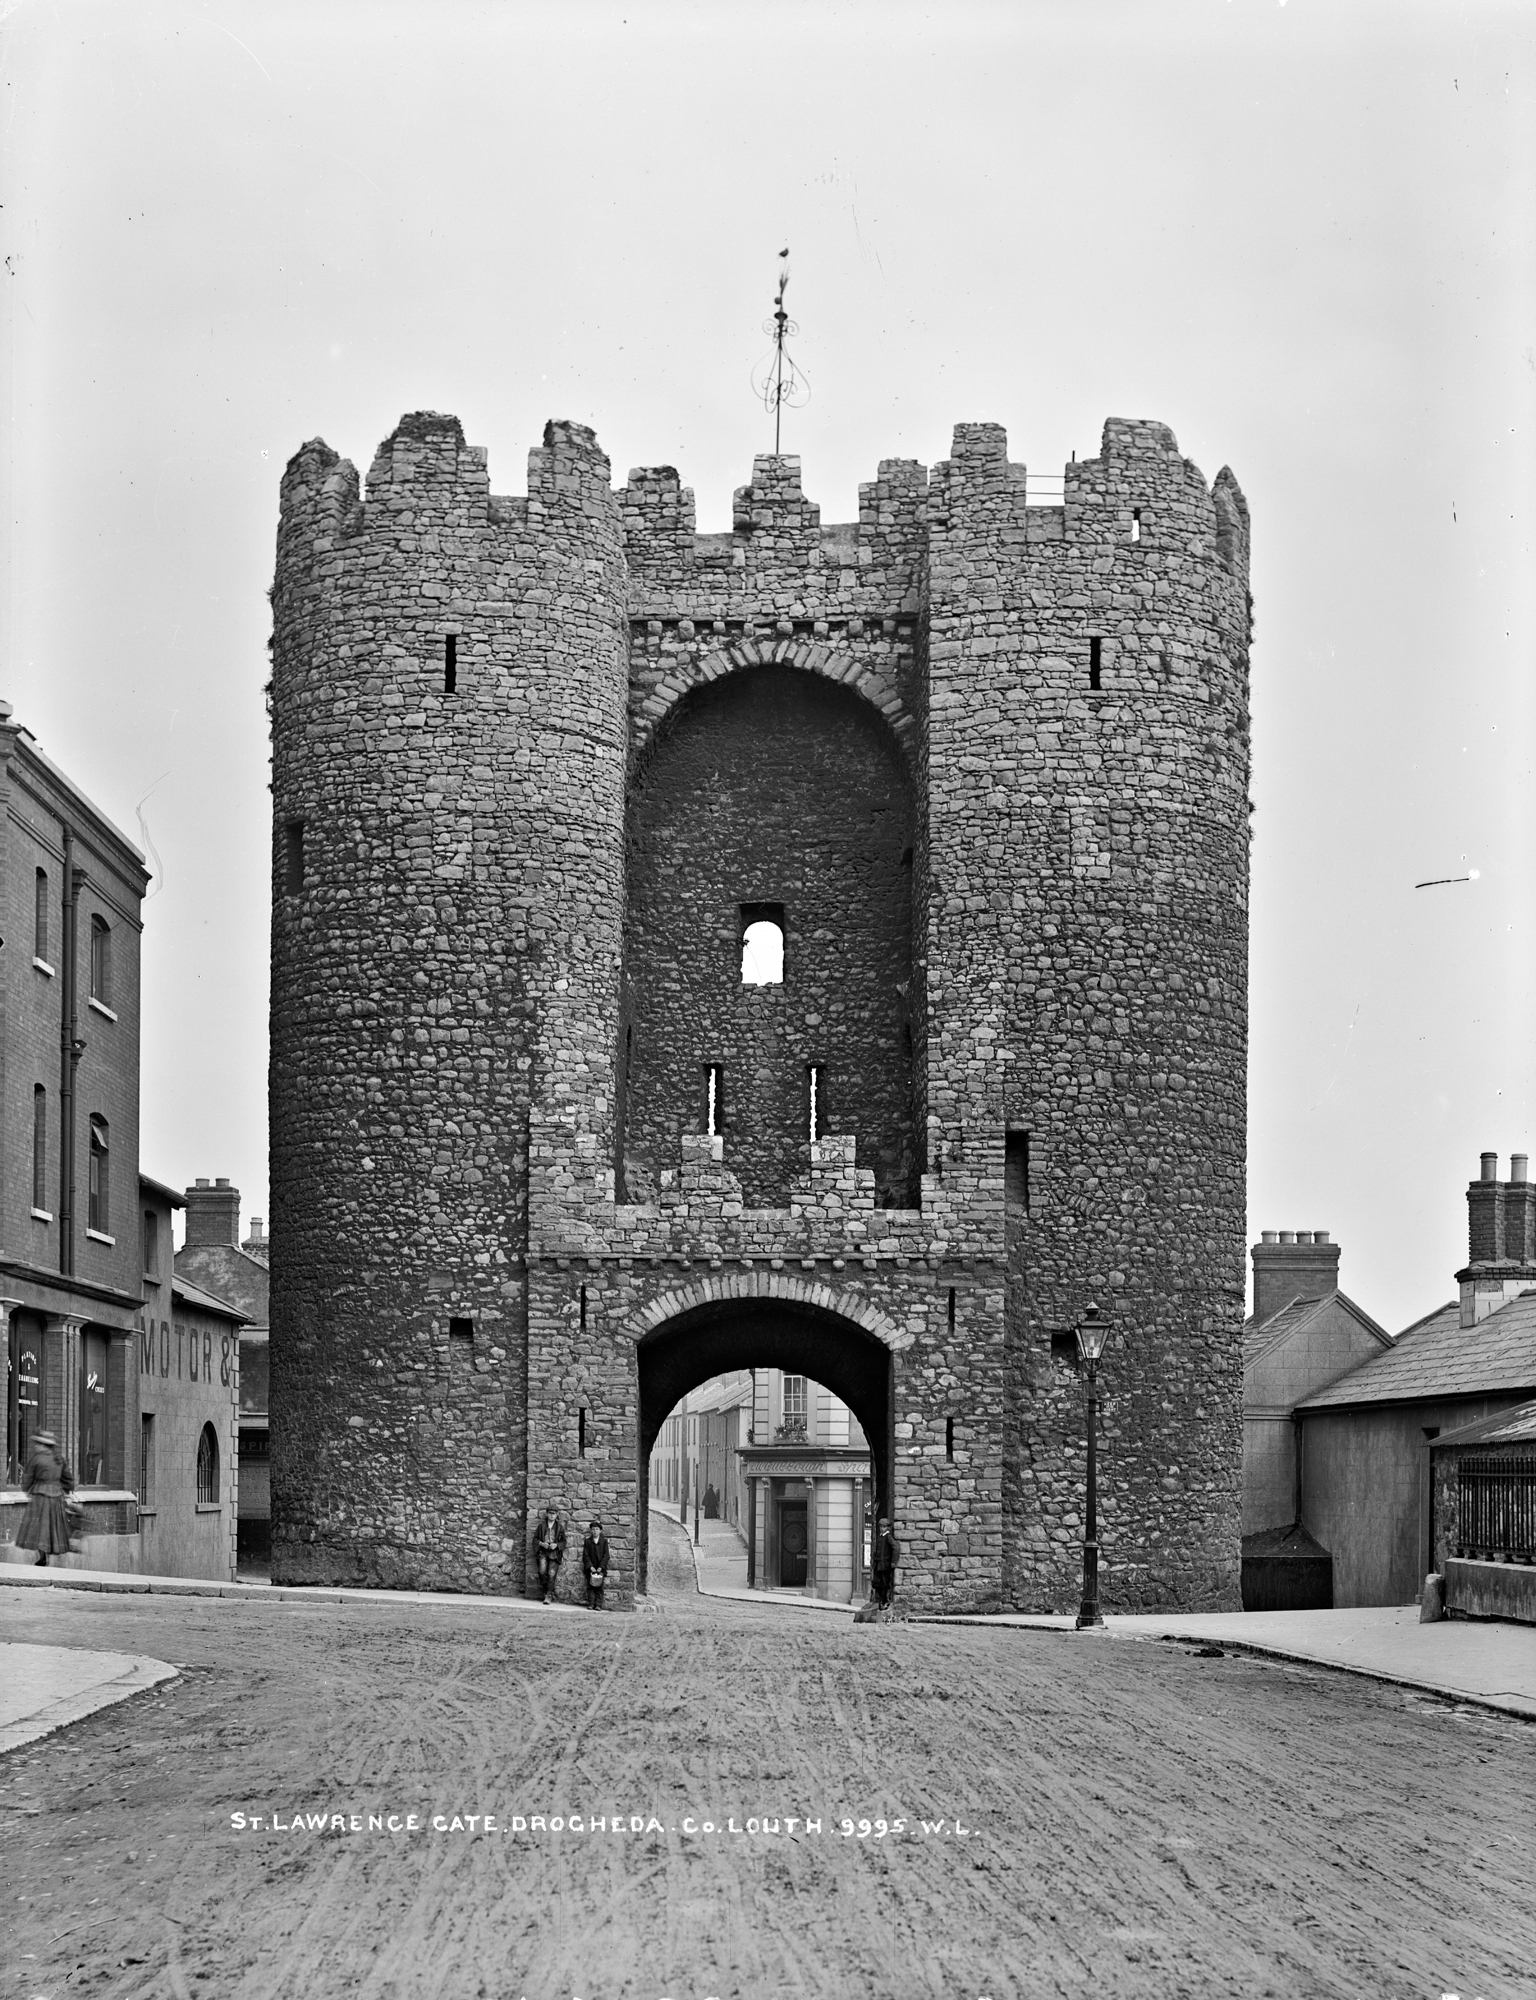 Laurence's Gate, Drogheda, Co. Louth